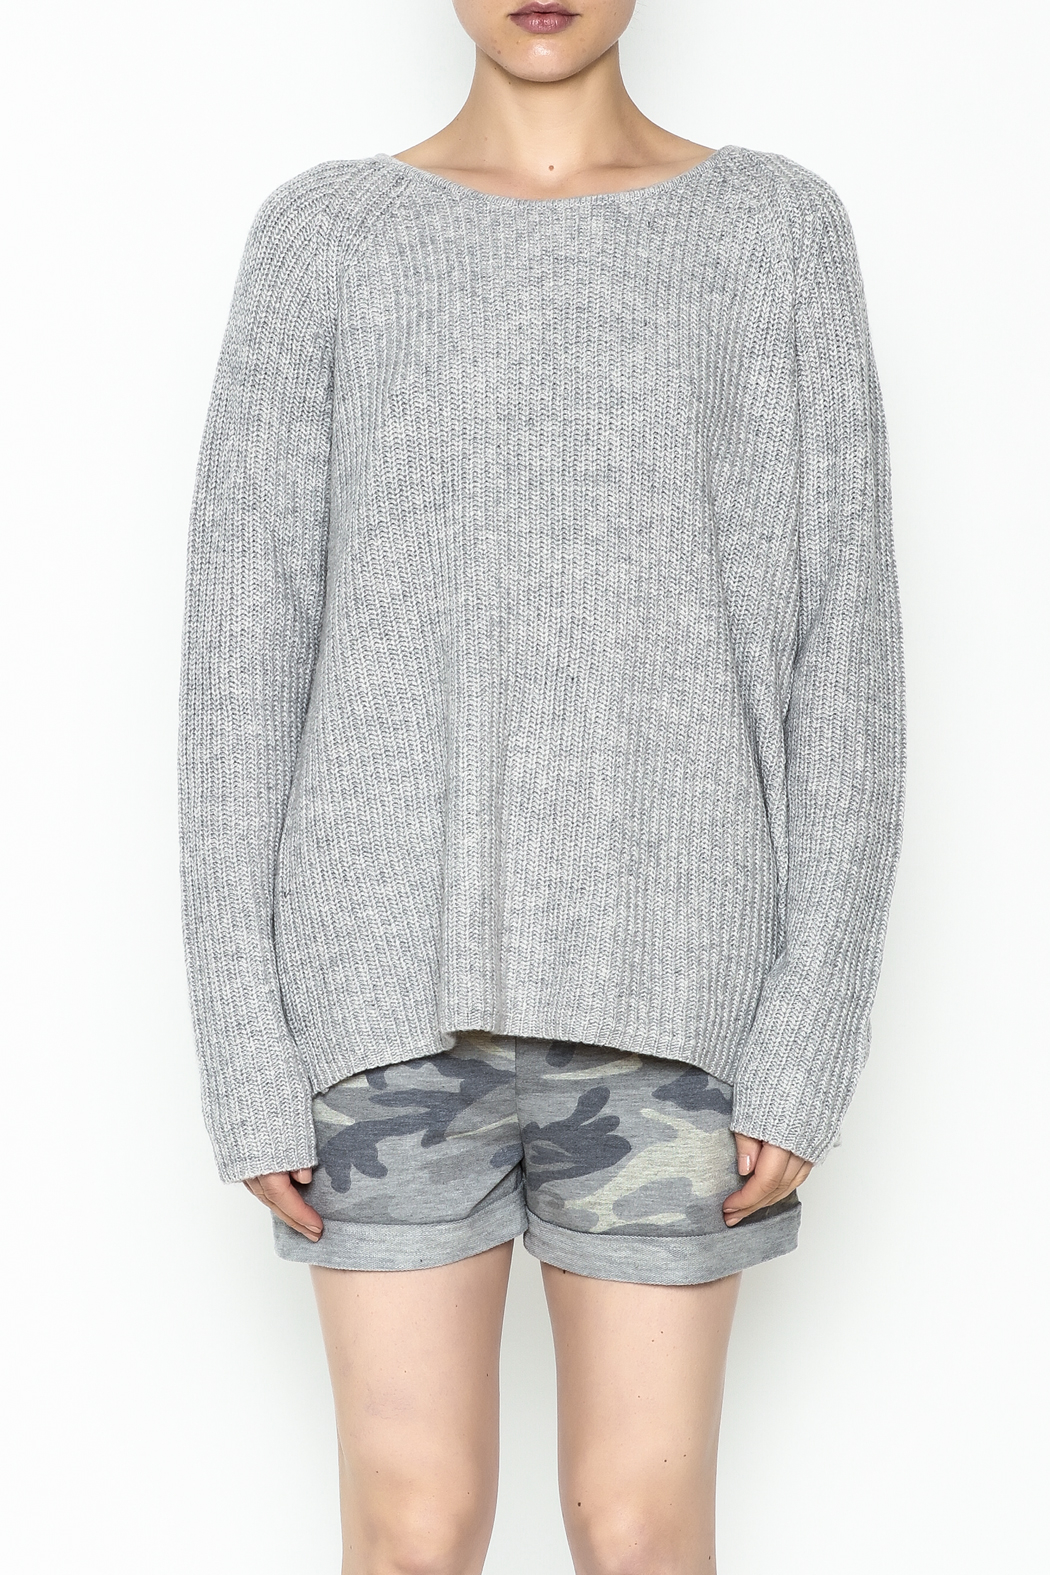 Josie Back Buckles Sweater - Front Full Image